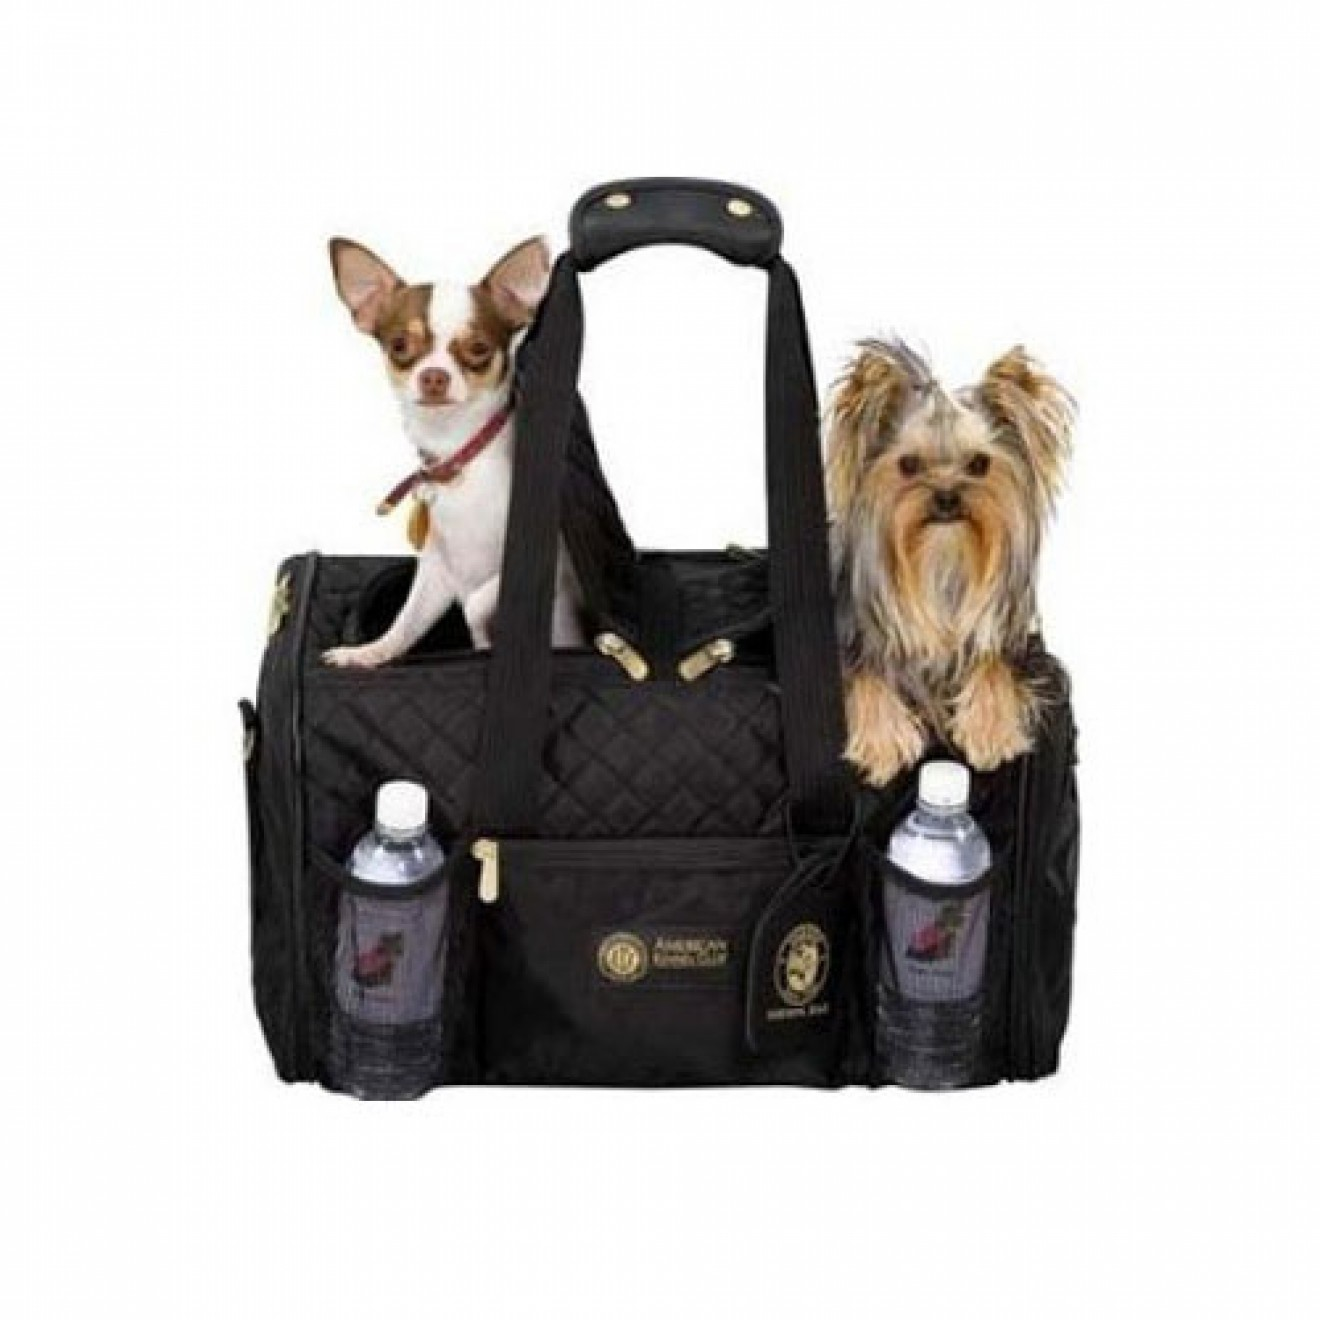 hundetasche f r zwei hunde doppel hundetasche doppel. Black Bedroom Furniture Sets. Home Design Ideas